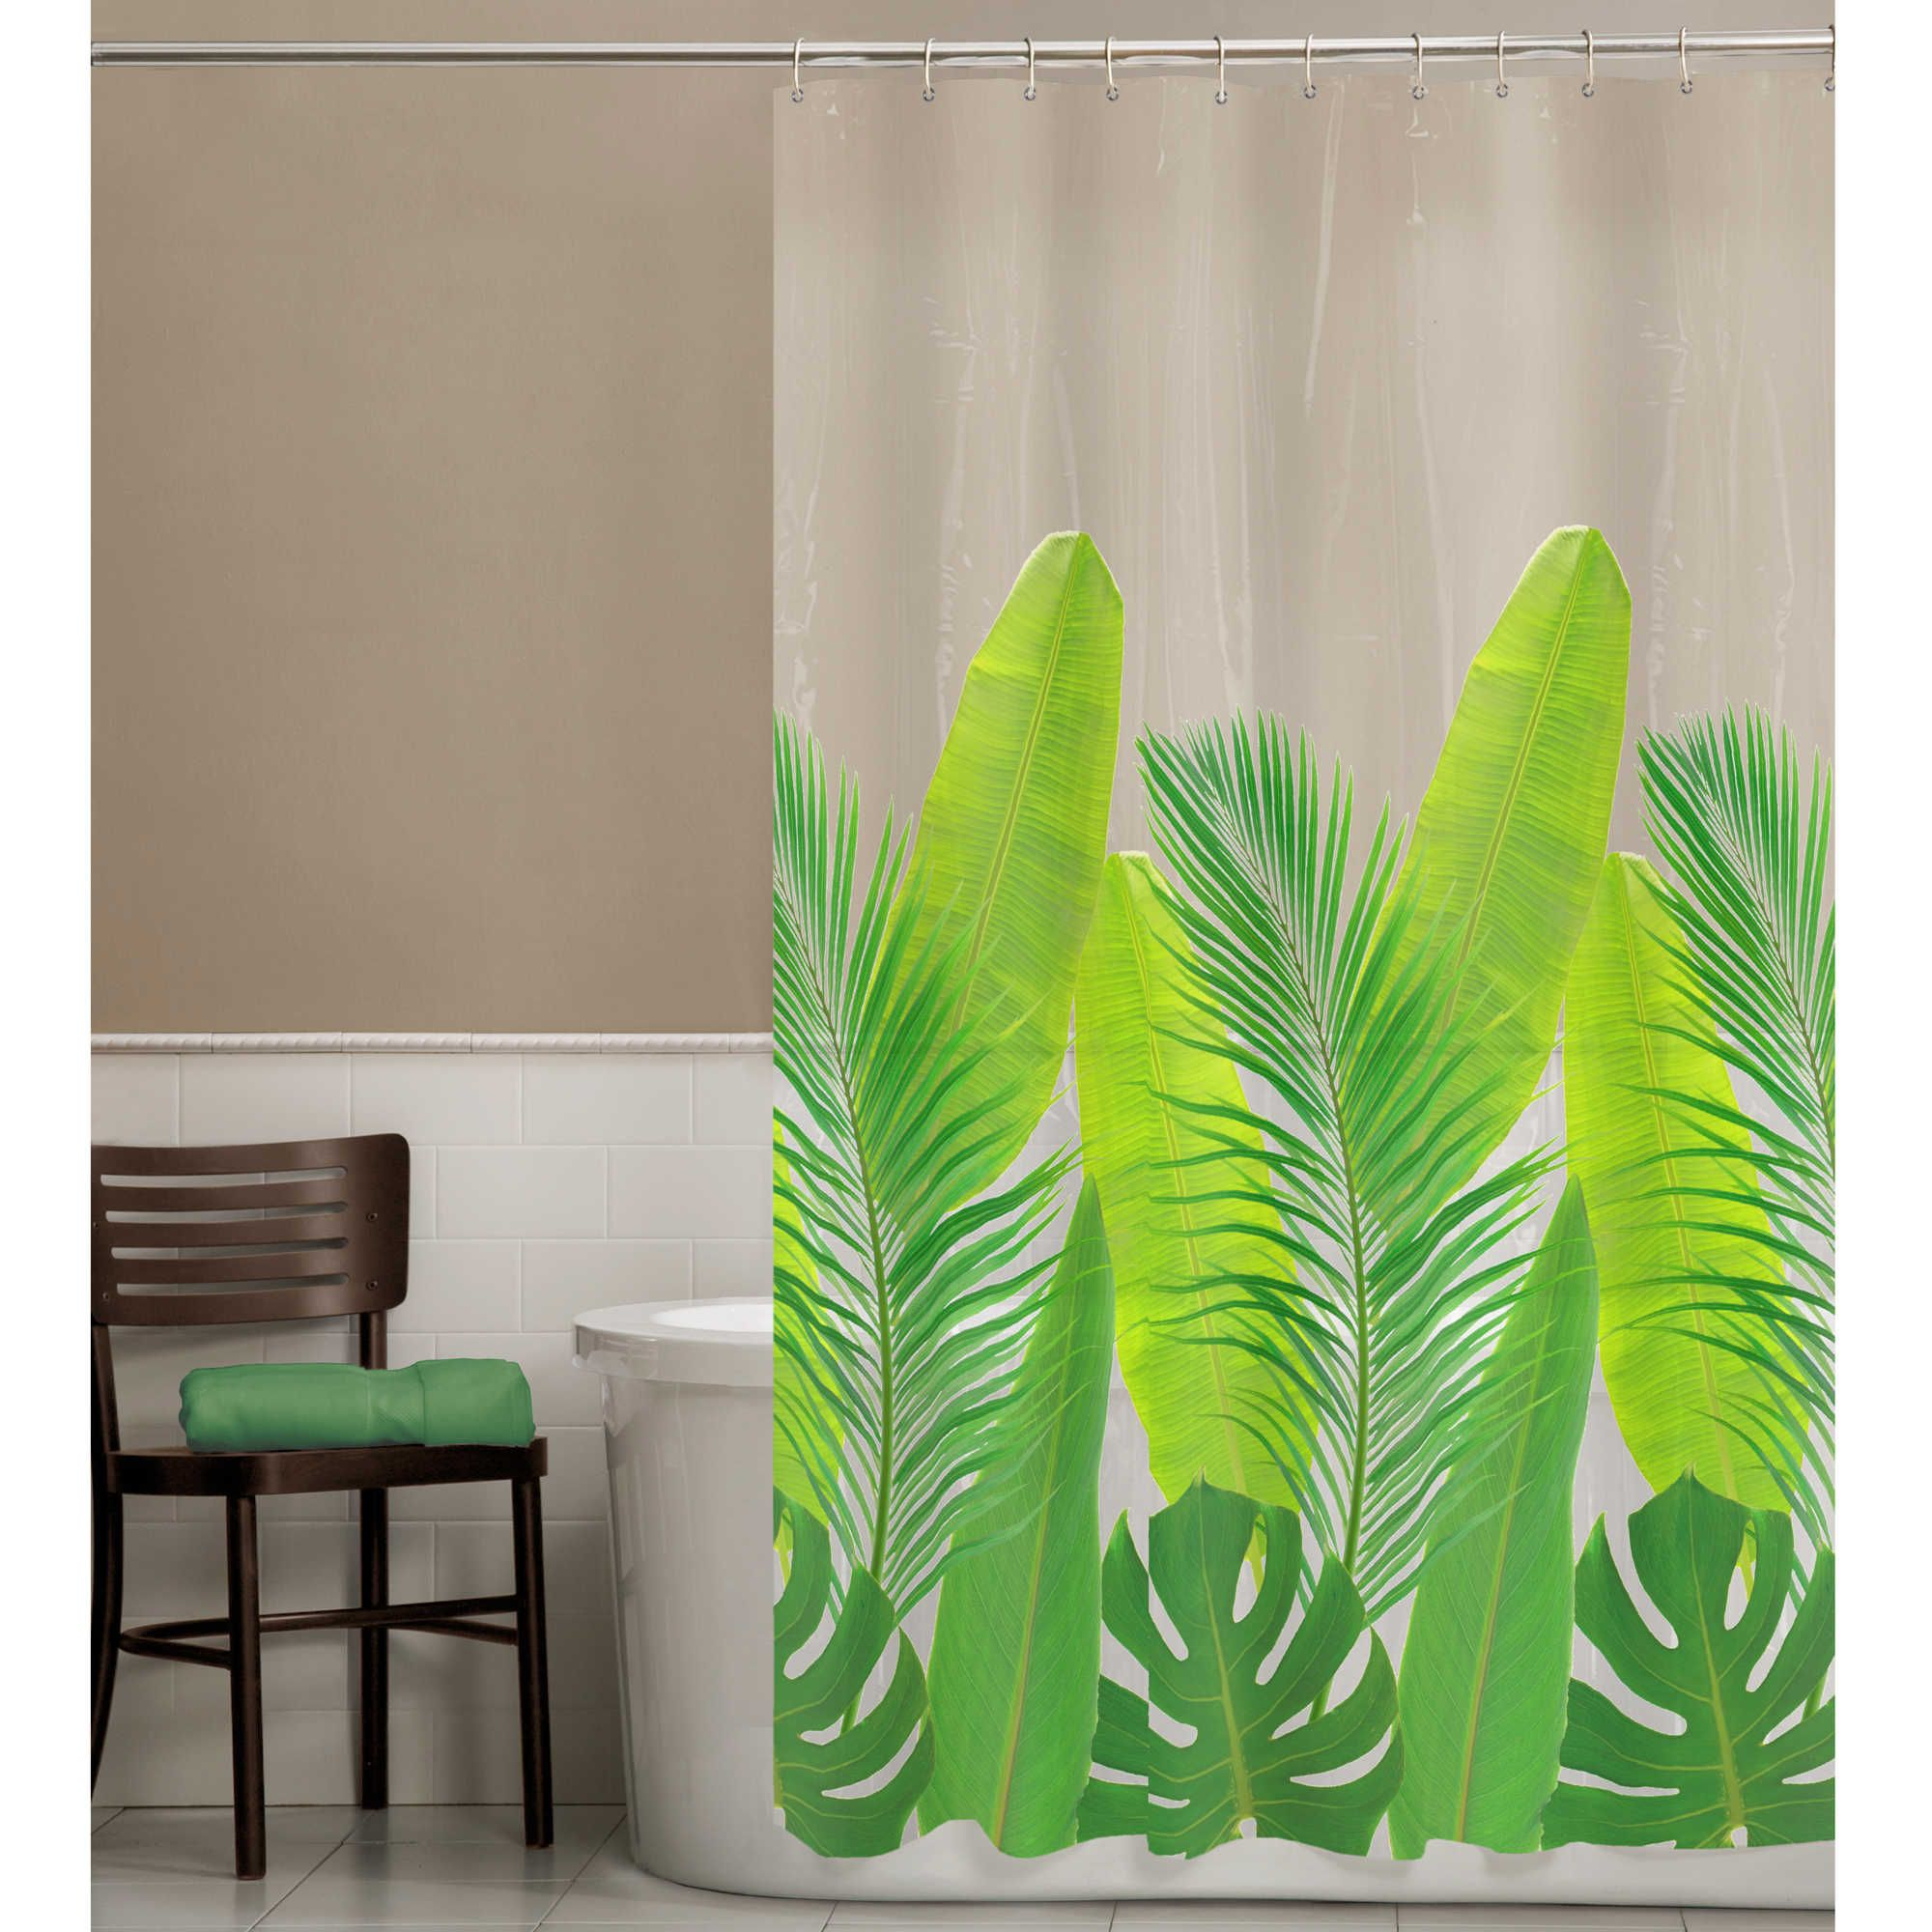 Peva Tropical Leaf Shower Curtain Tropical Leaf Decor Shower